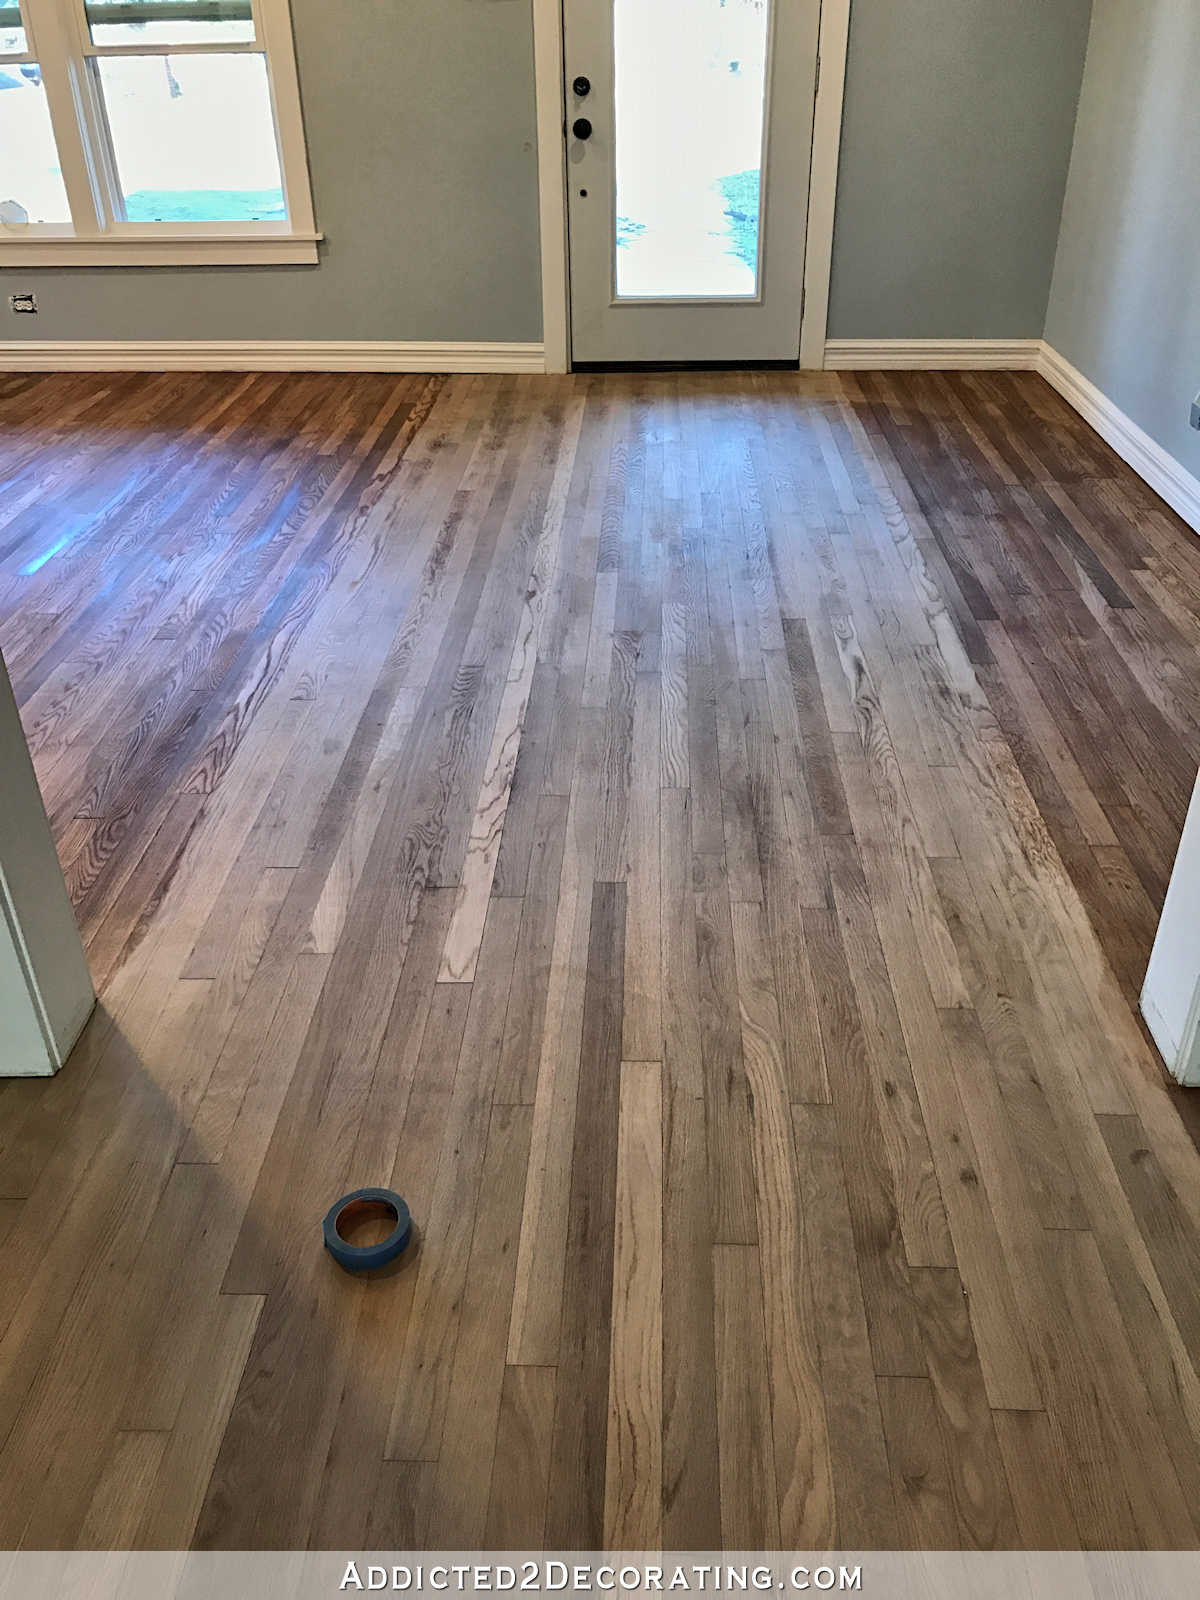 hardwood floor refinishing jobs of adventures in staining my red oak hardwood floors products process pertaining to staining red oak hardwood floors 4 entryway and living room wood conditioner